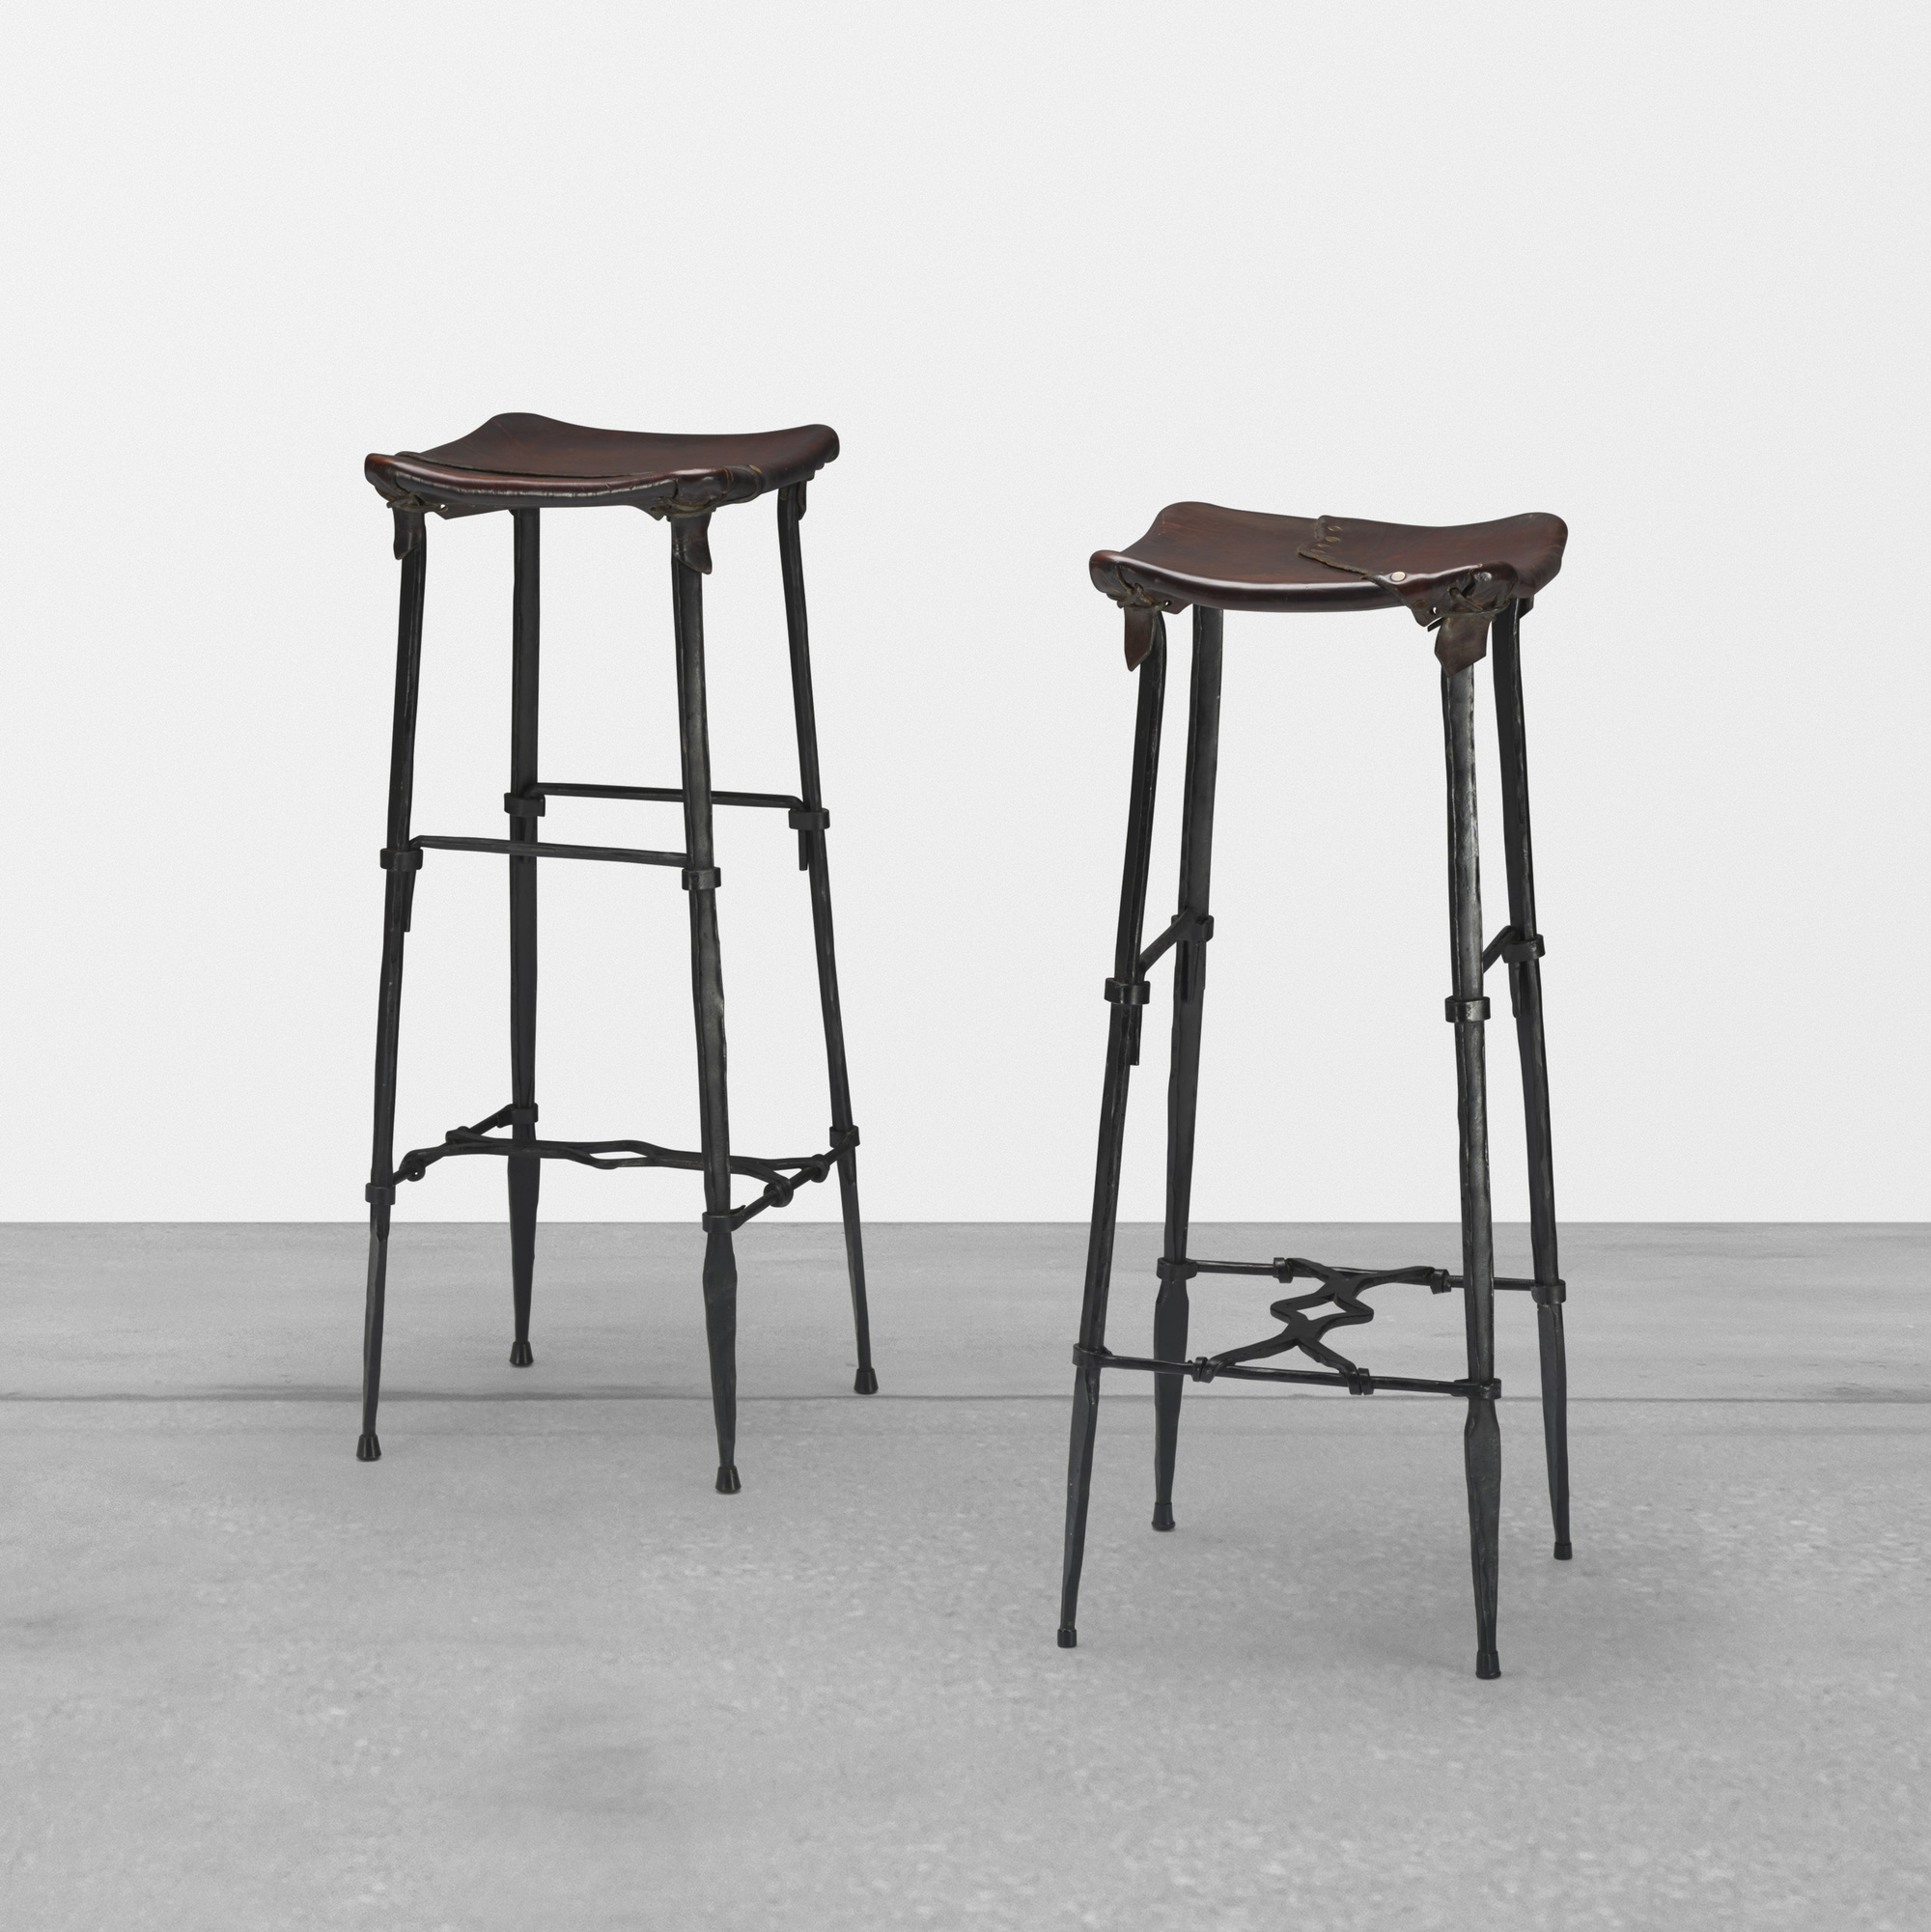 316: Sido and François Thevenin / Ups stools, pair (1 of 2)